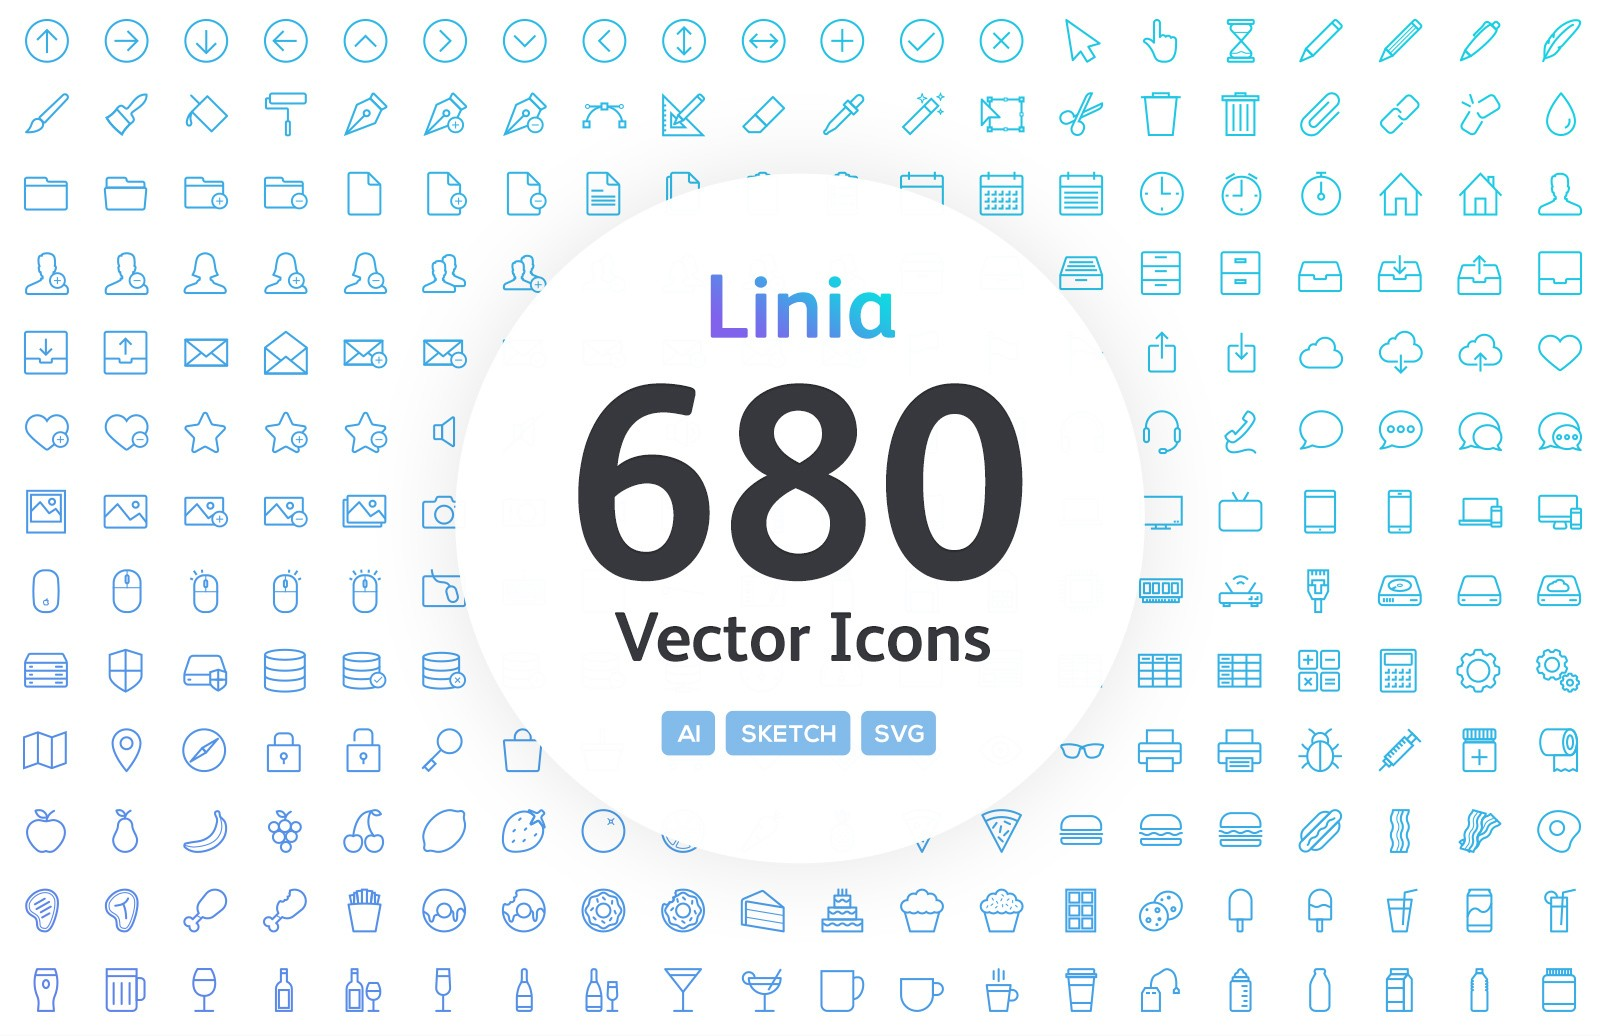 Linia Vector Line Icons 1A